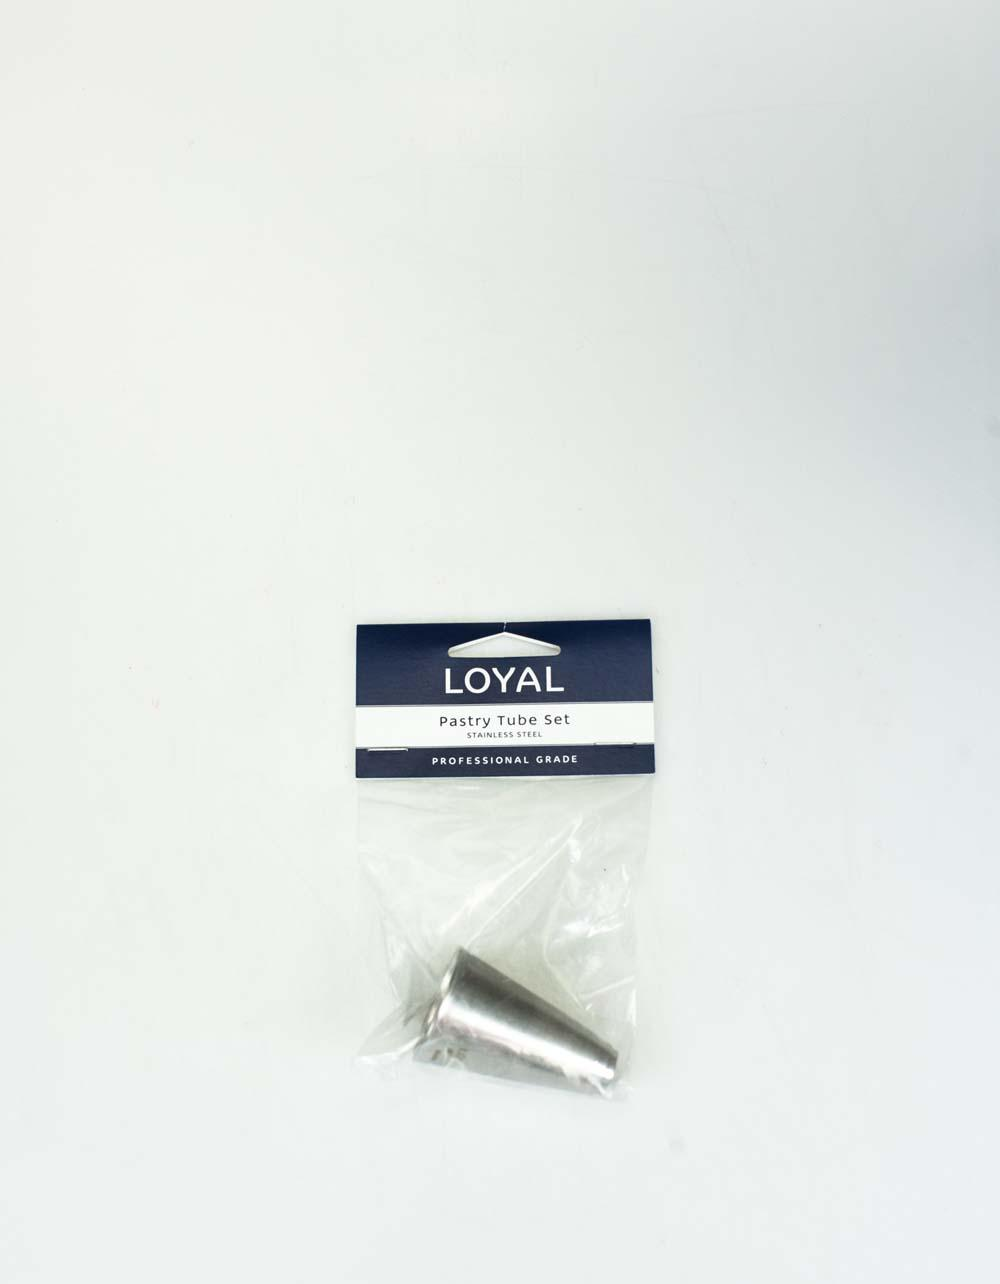 Loyal Professional Grade Stainless Steel Plain Piping Tubes - Set of 8